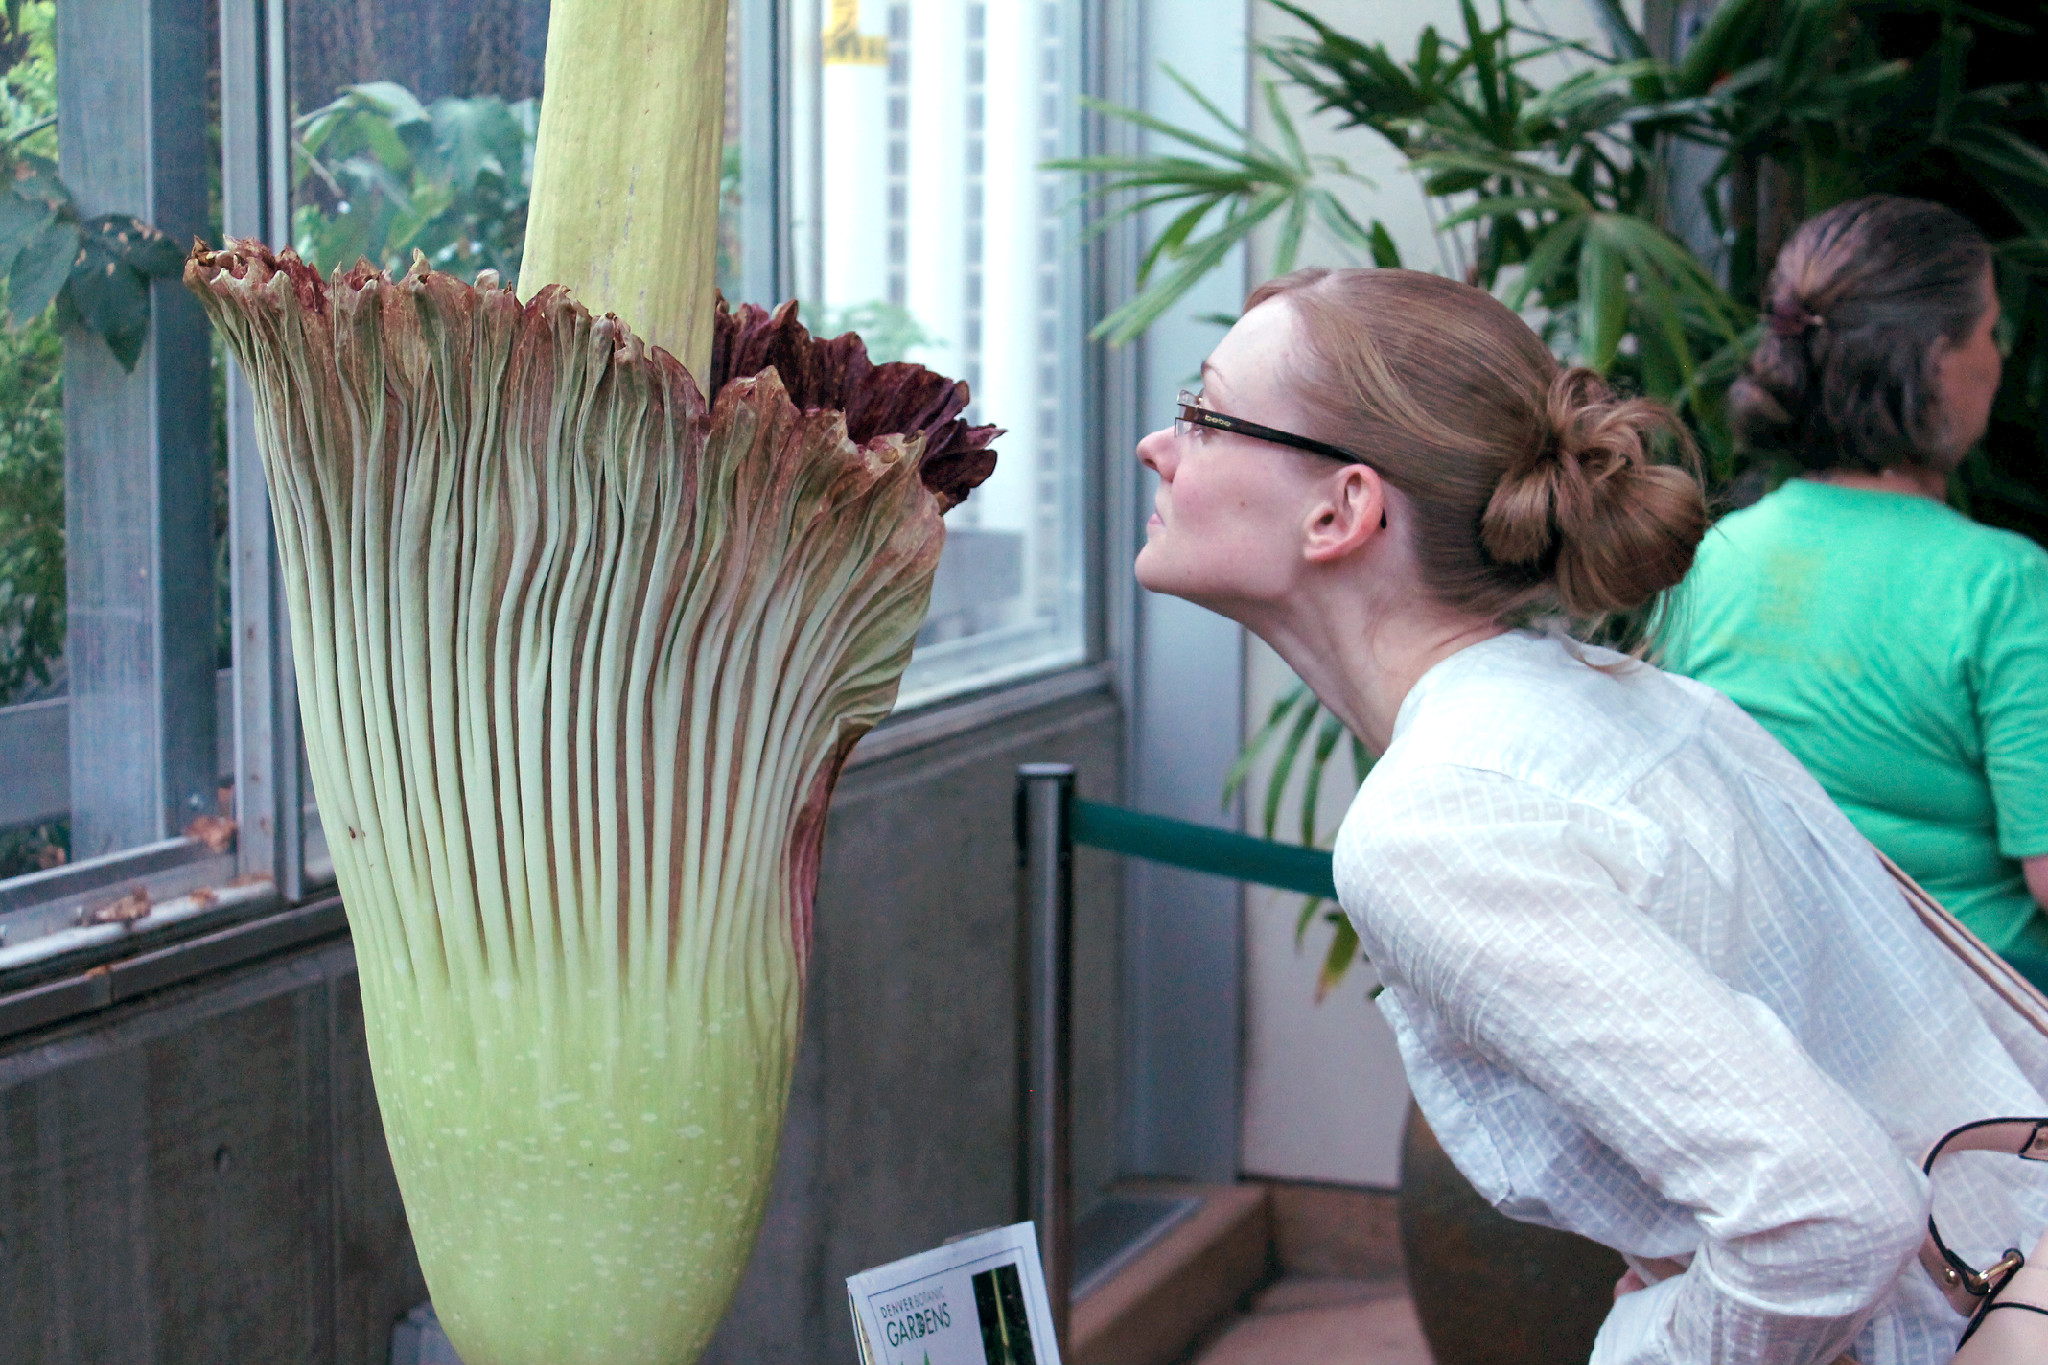 Little Stinker, one of the Denver Botanic Gardens' corpse flowers, is in bloom Aug. 6, 2016. (Ashley Dean/Denverite)